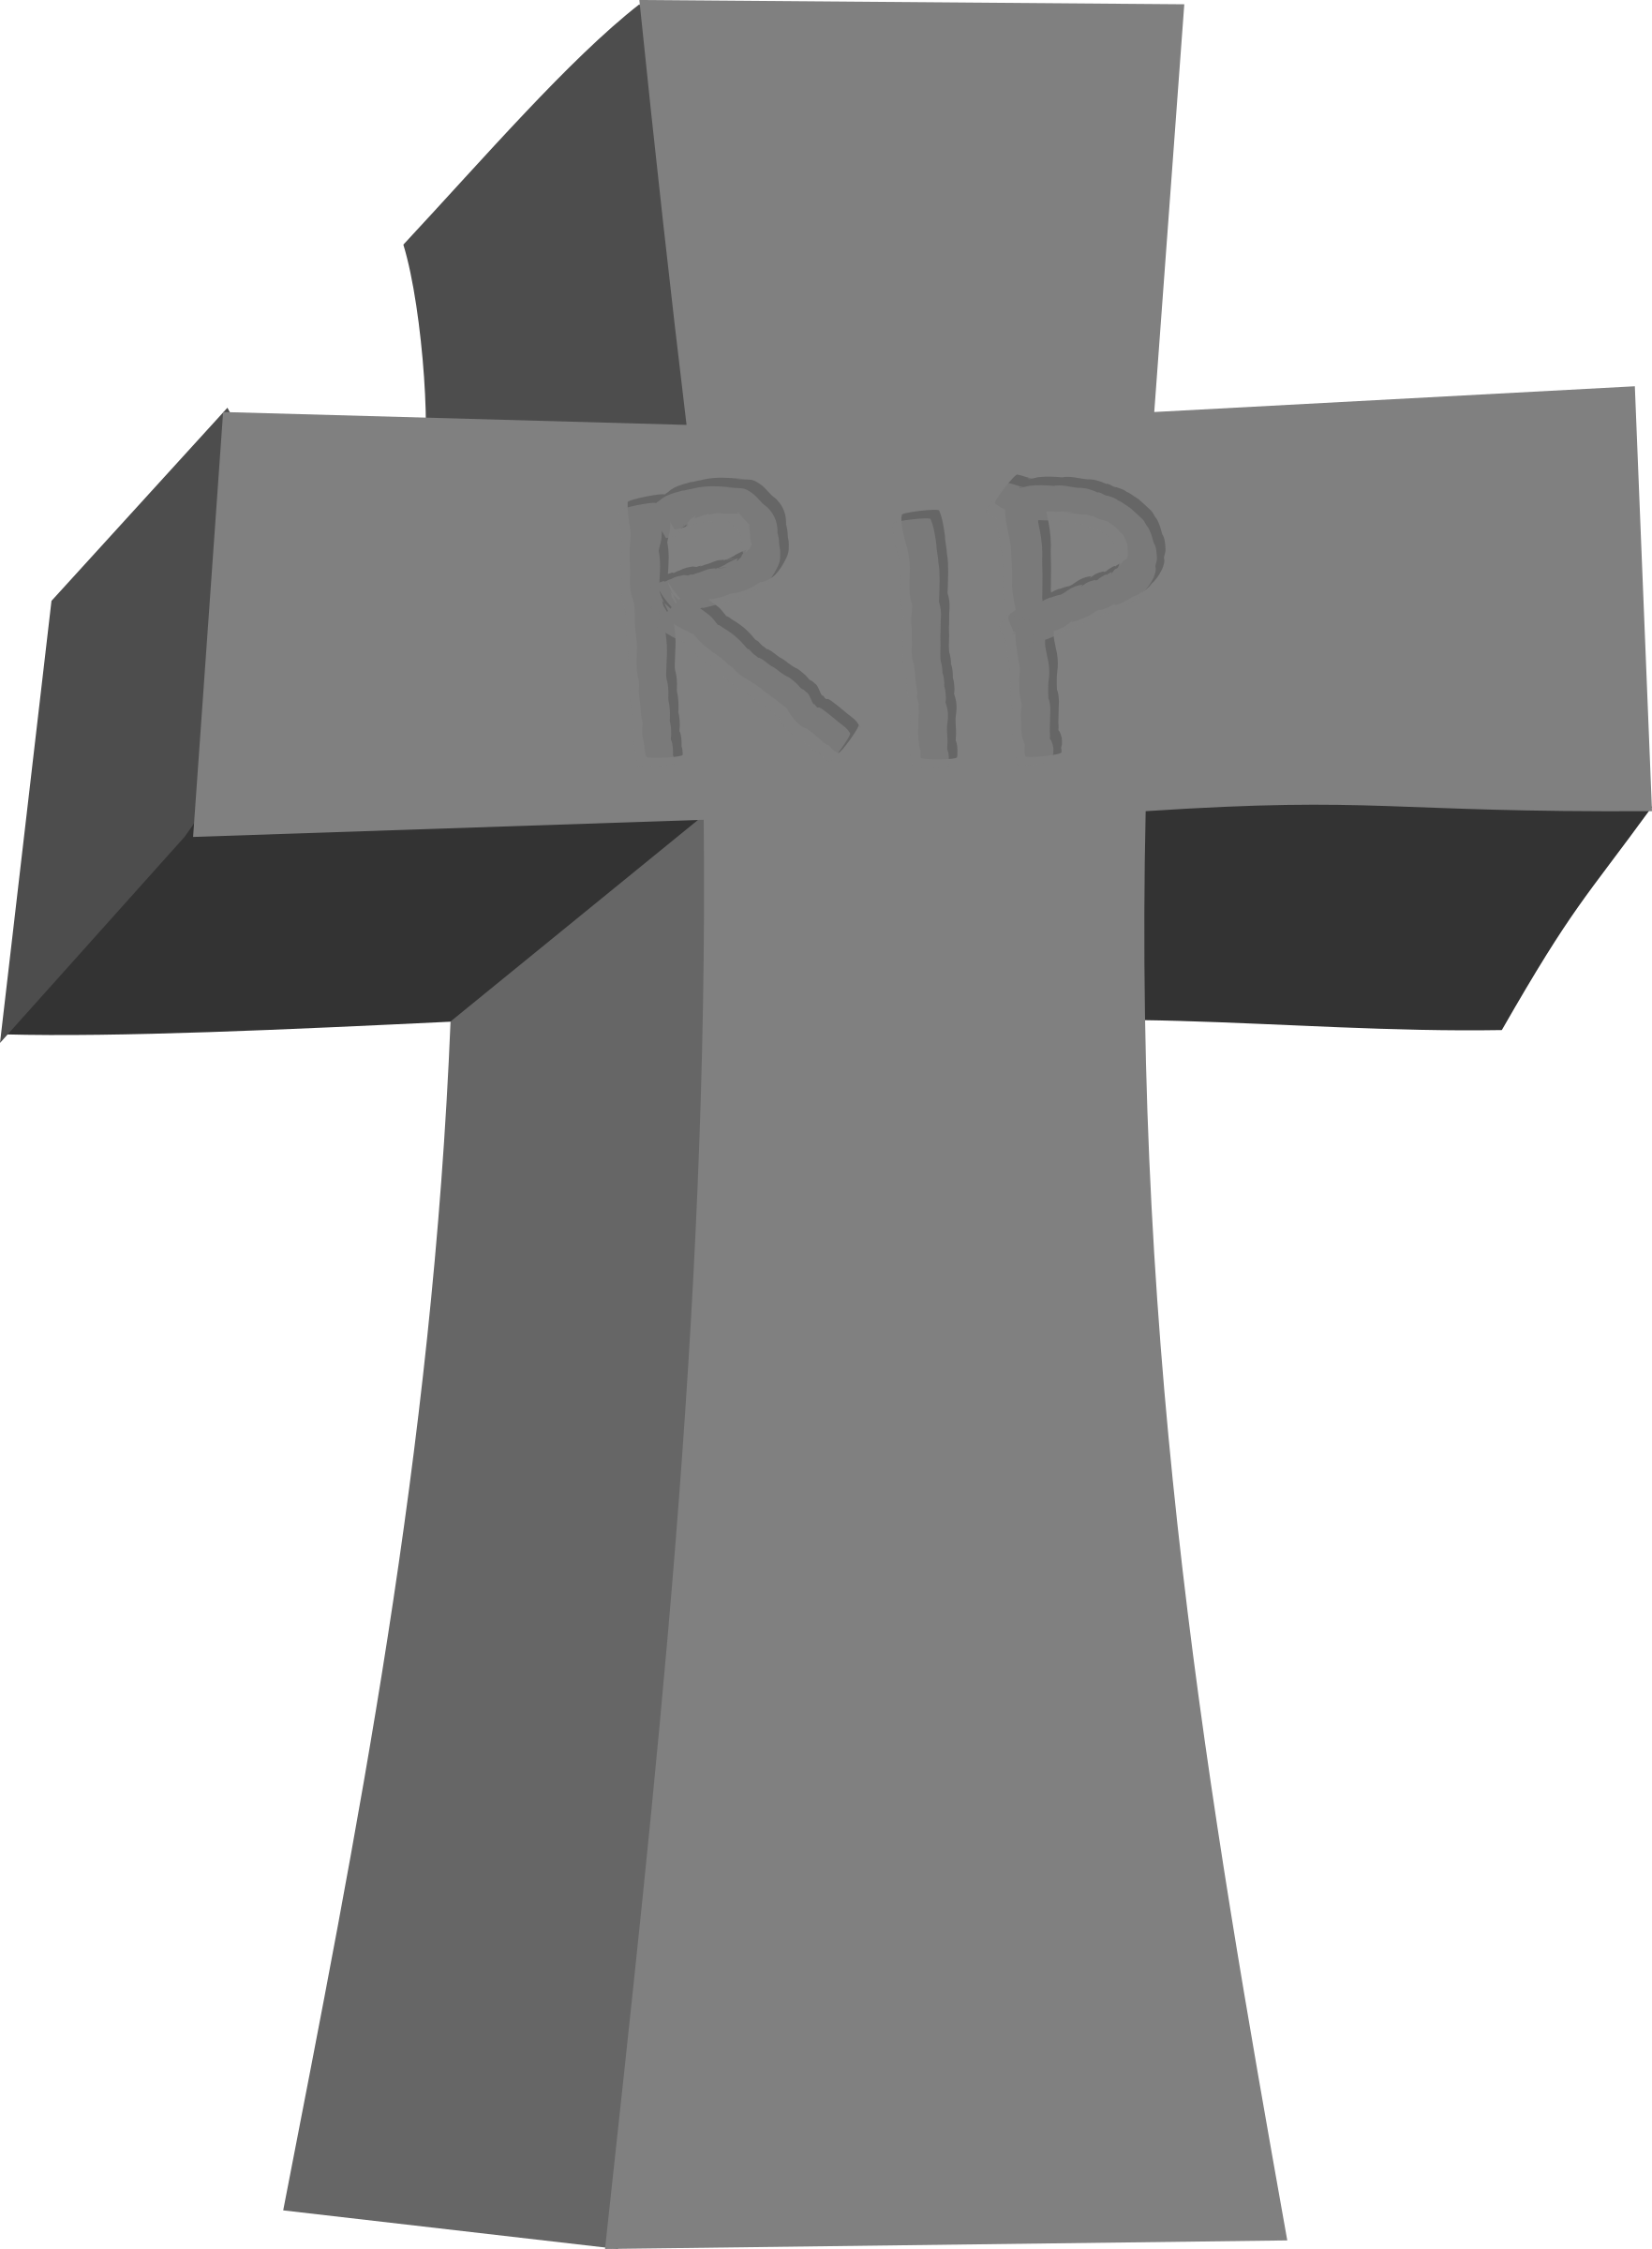 Tombstone cross clipart banner transparent download 28+ Collection of Cross Tombstone Clipart | High quality, free ... banner transparent download